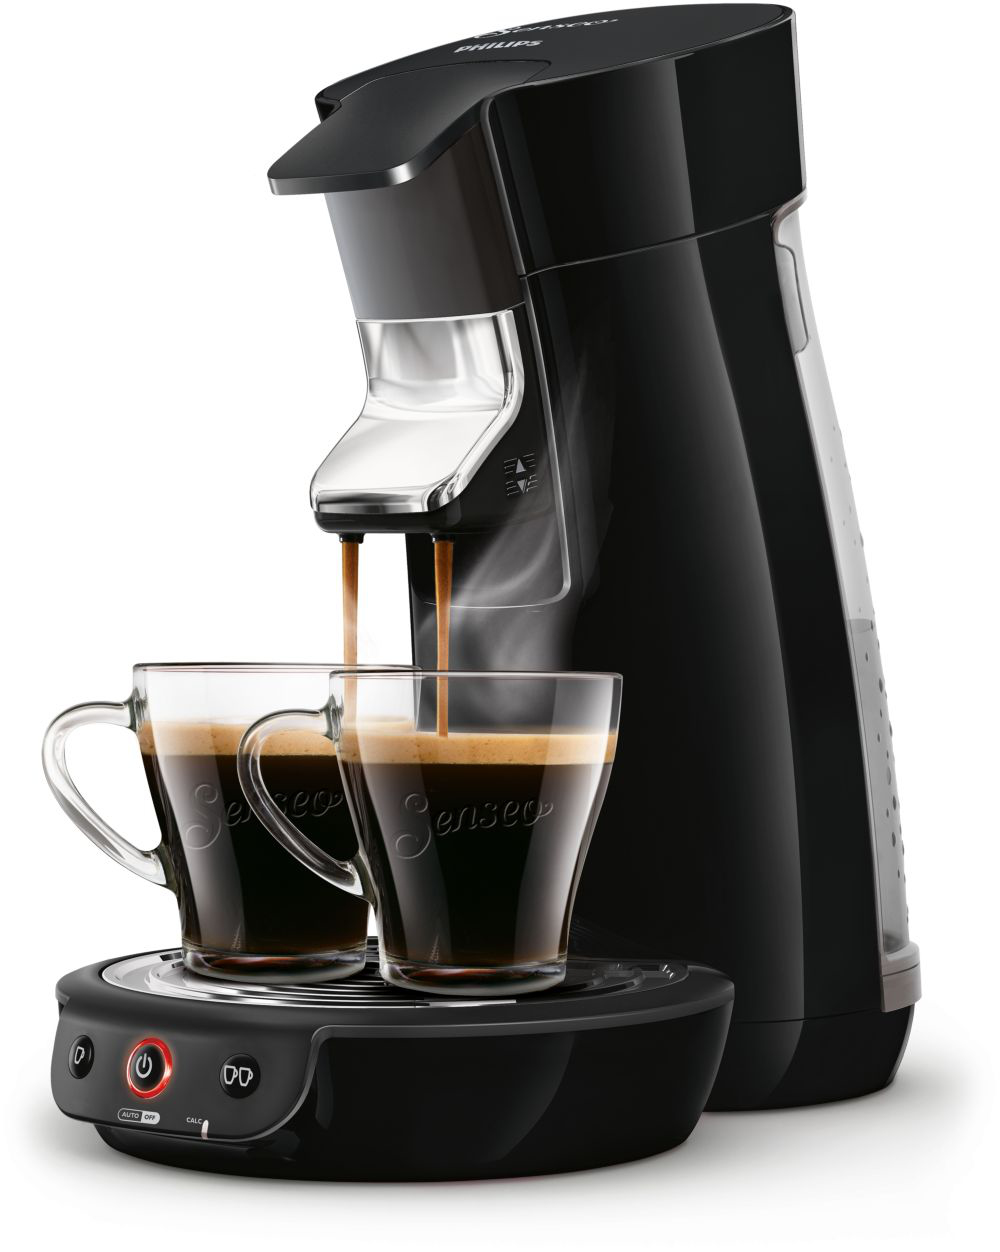 philips senseo viva caf hd7829 60 kaffeemaschine kaffeepadmaschine ebay. Black Bedroom Furniture Sets. Home Design Ideas